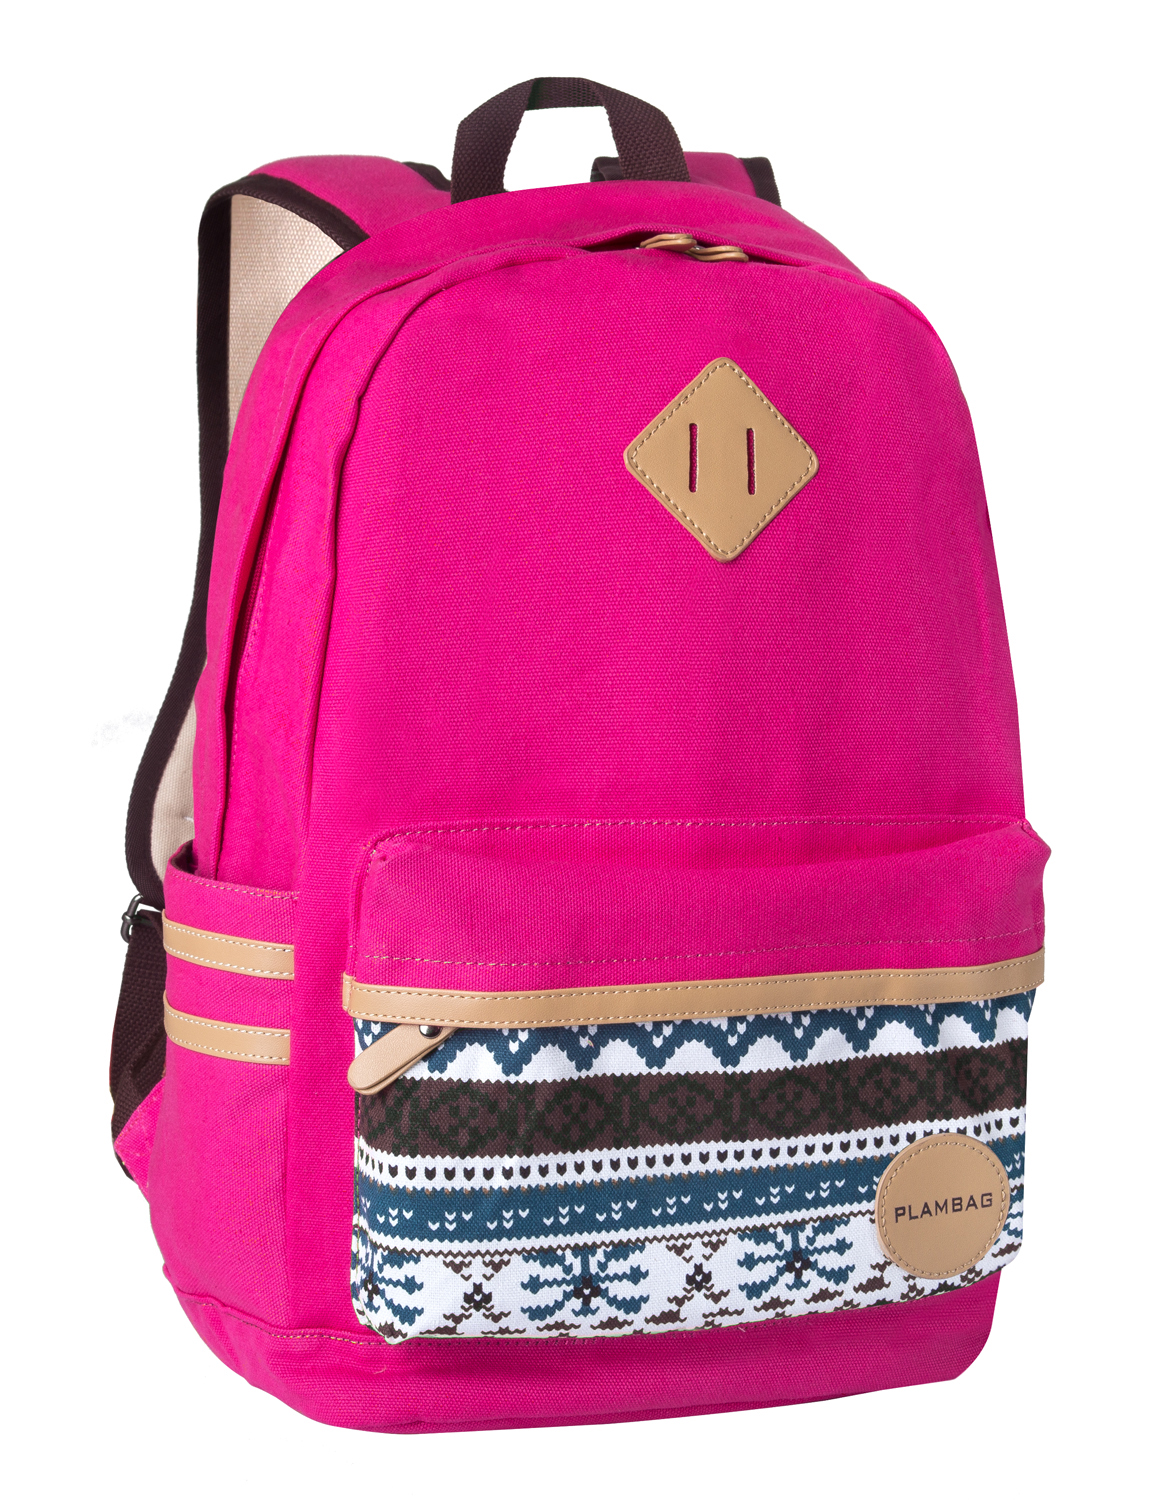 Women Girl Canvas Backpack Rucksack Shoulder Bag Travel School ...